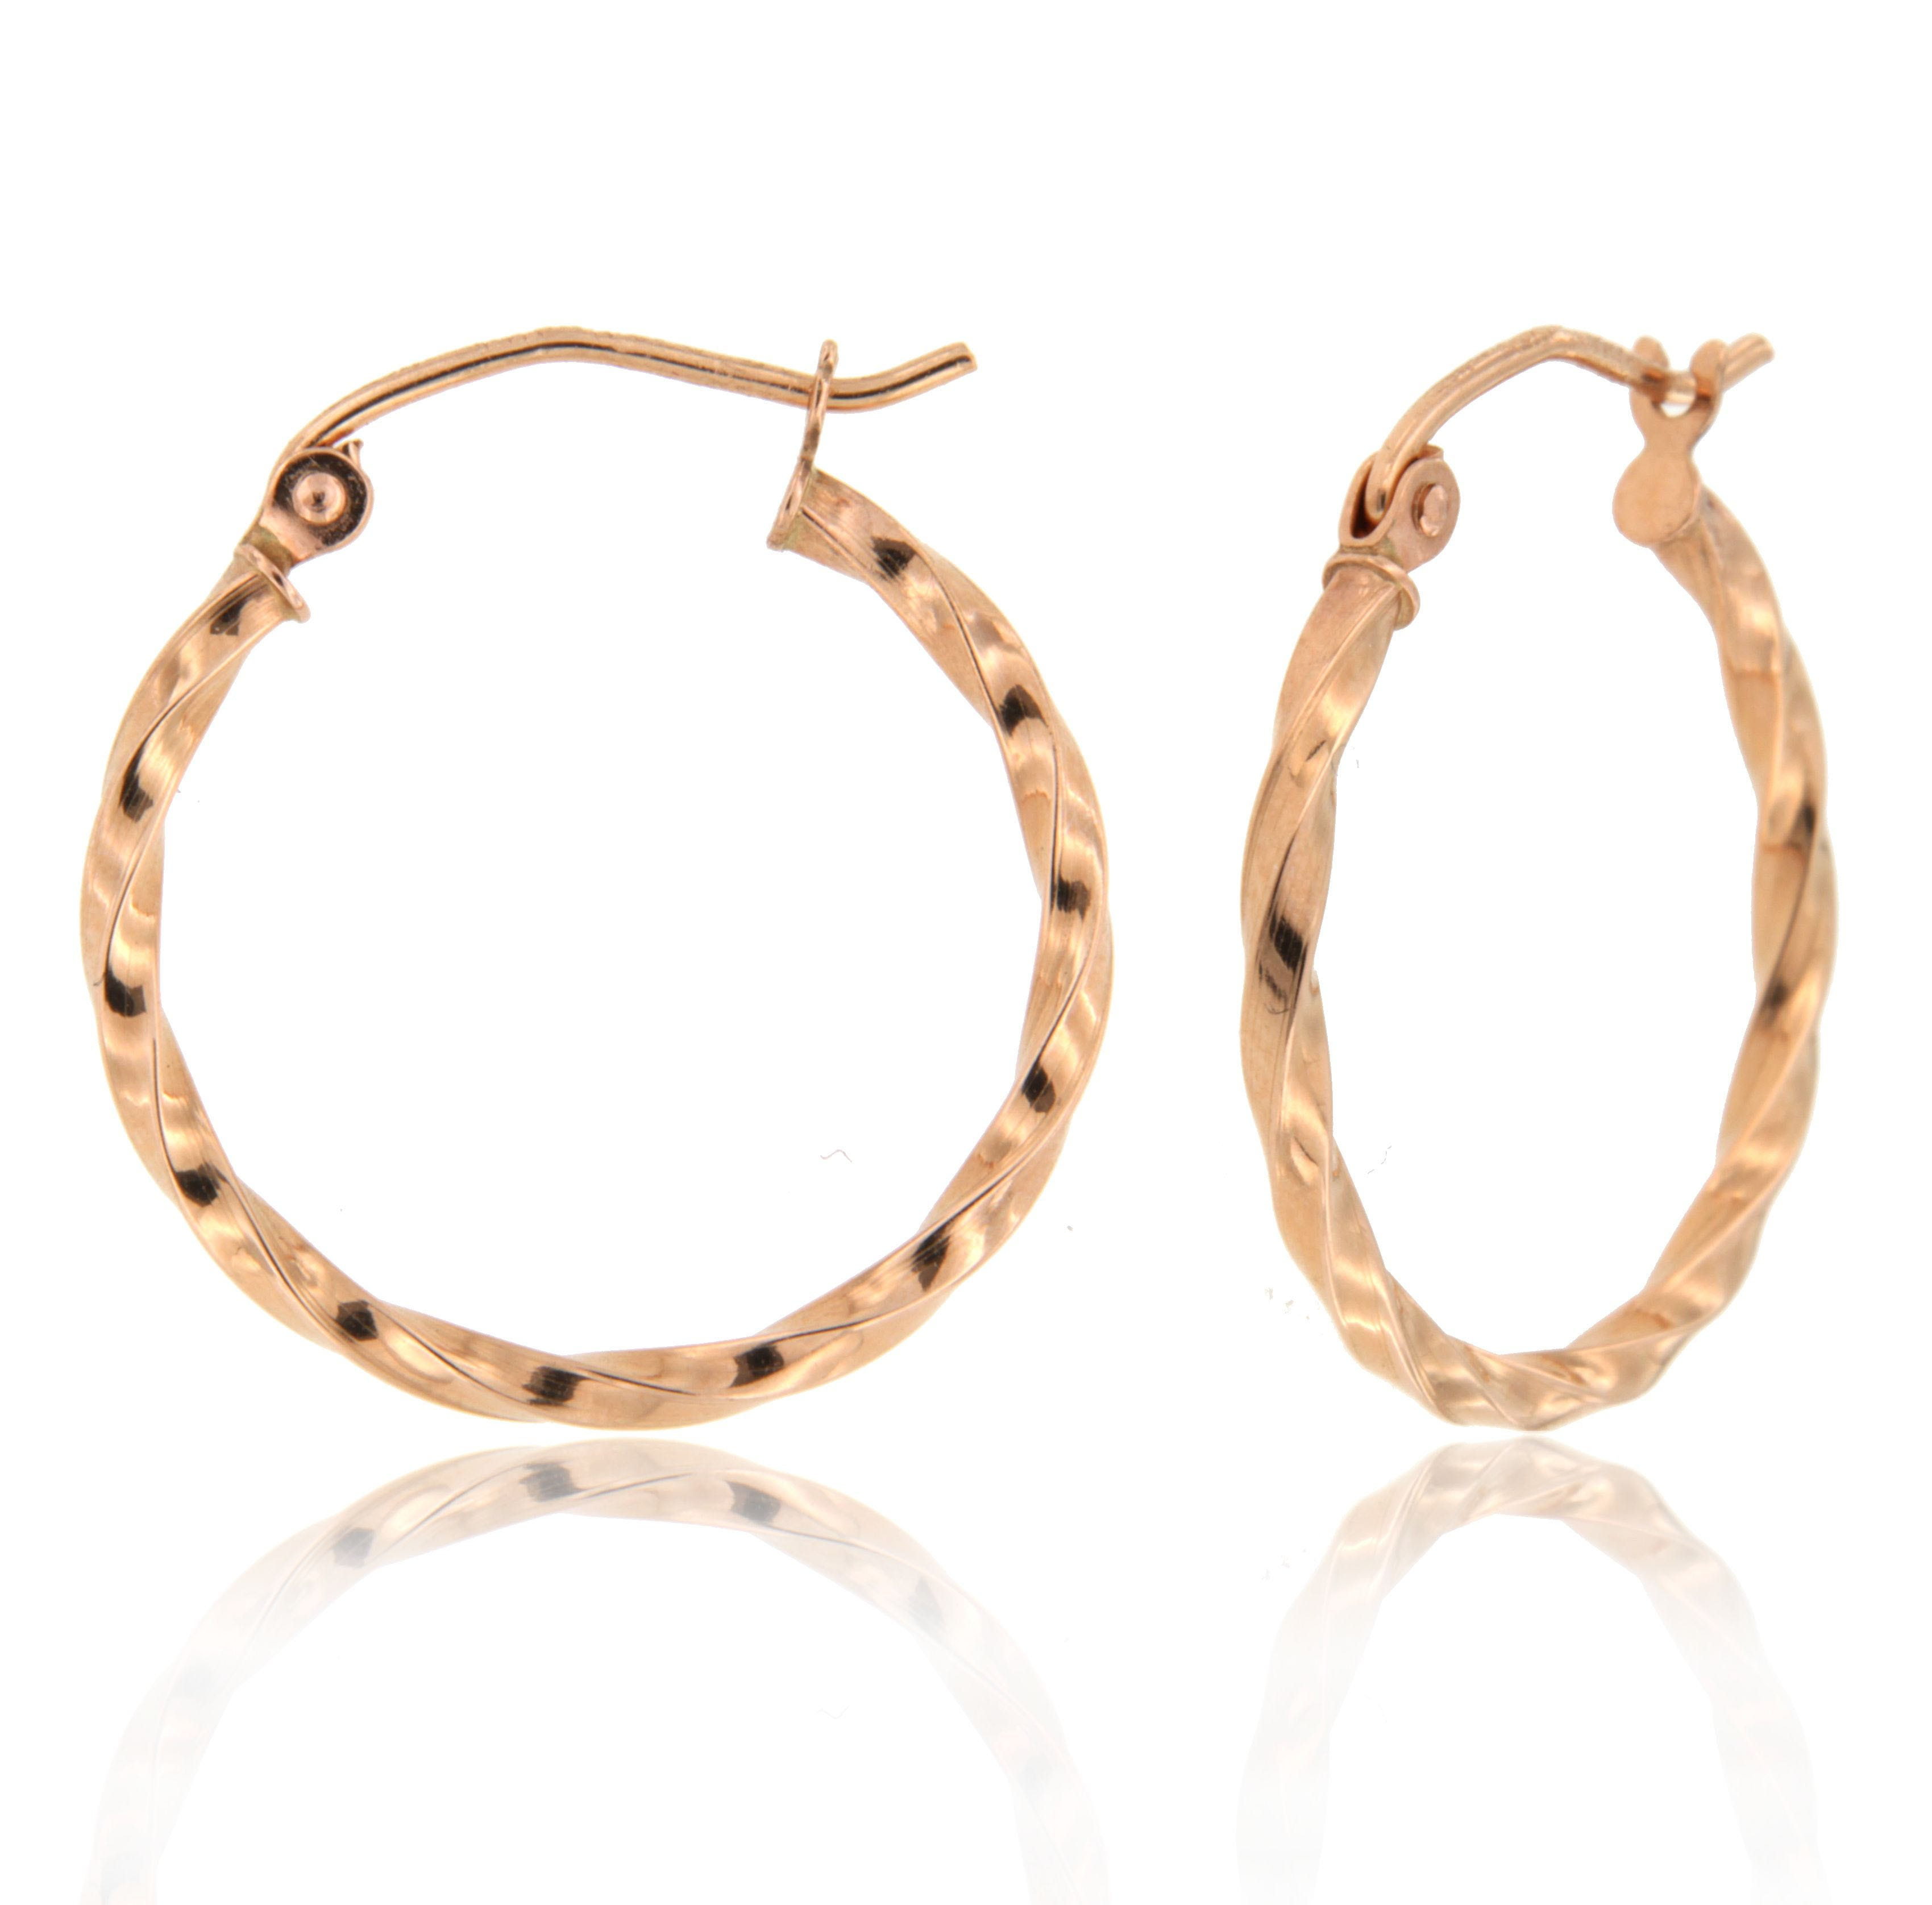 b5bc6e2d21446 Twist Hoop Earrings in 14k Rose Gold